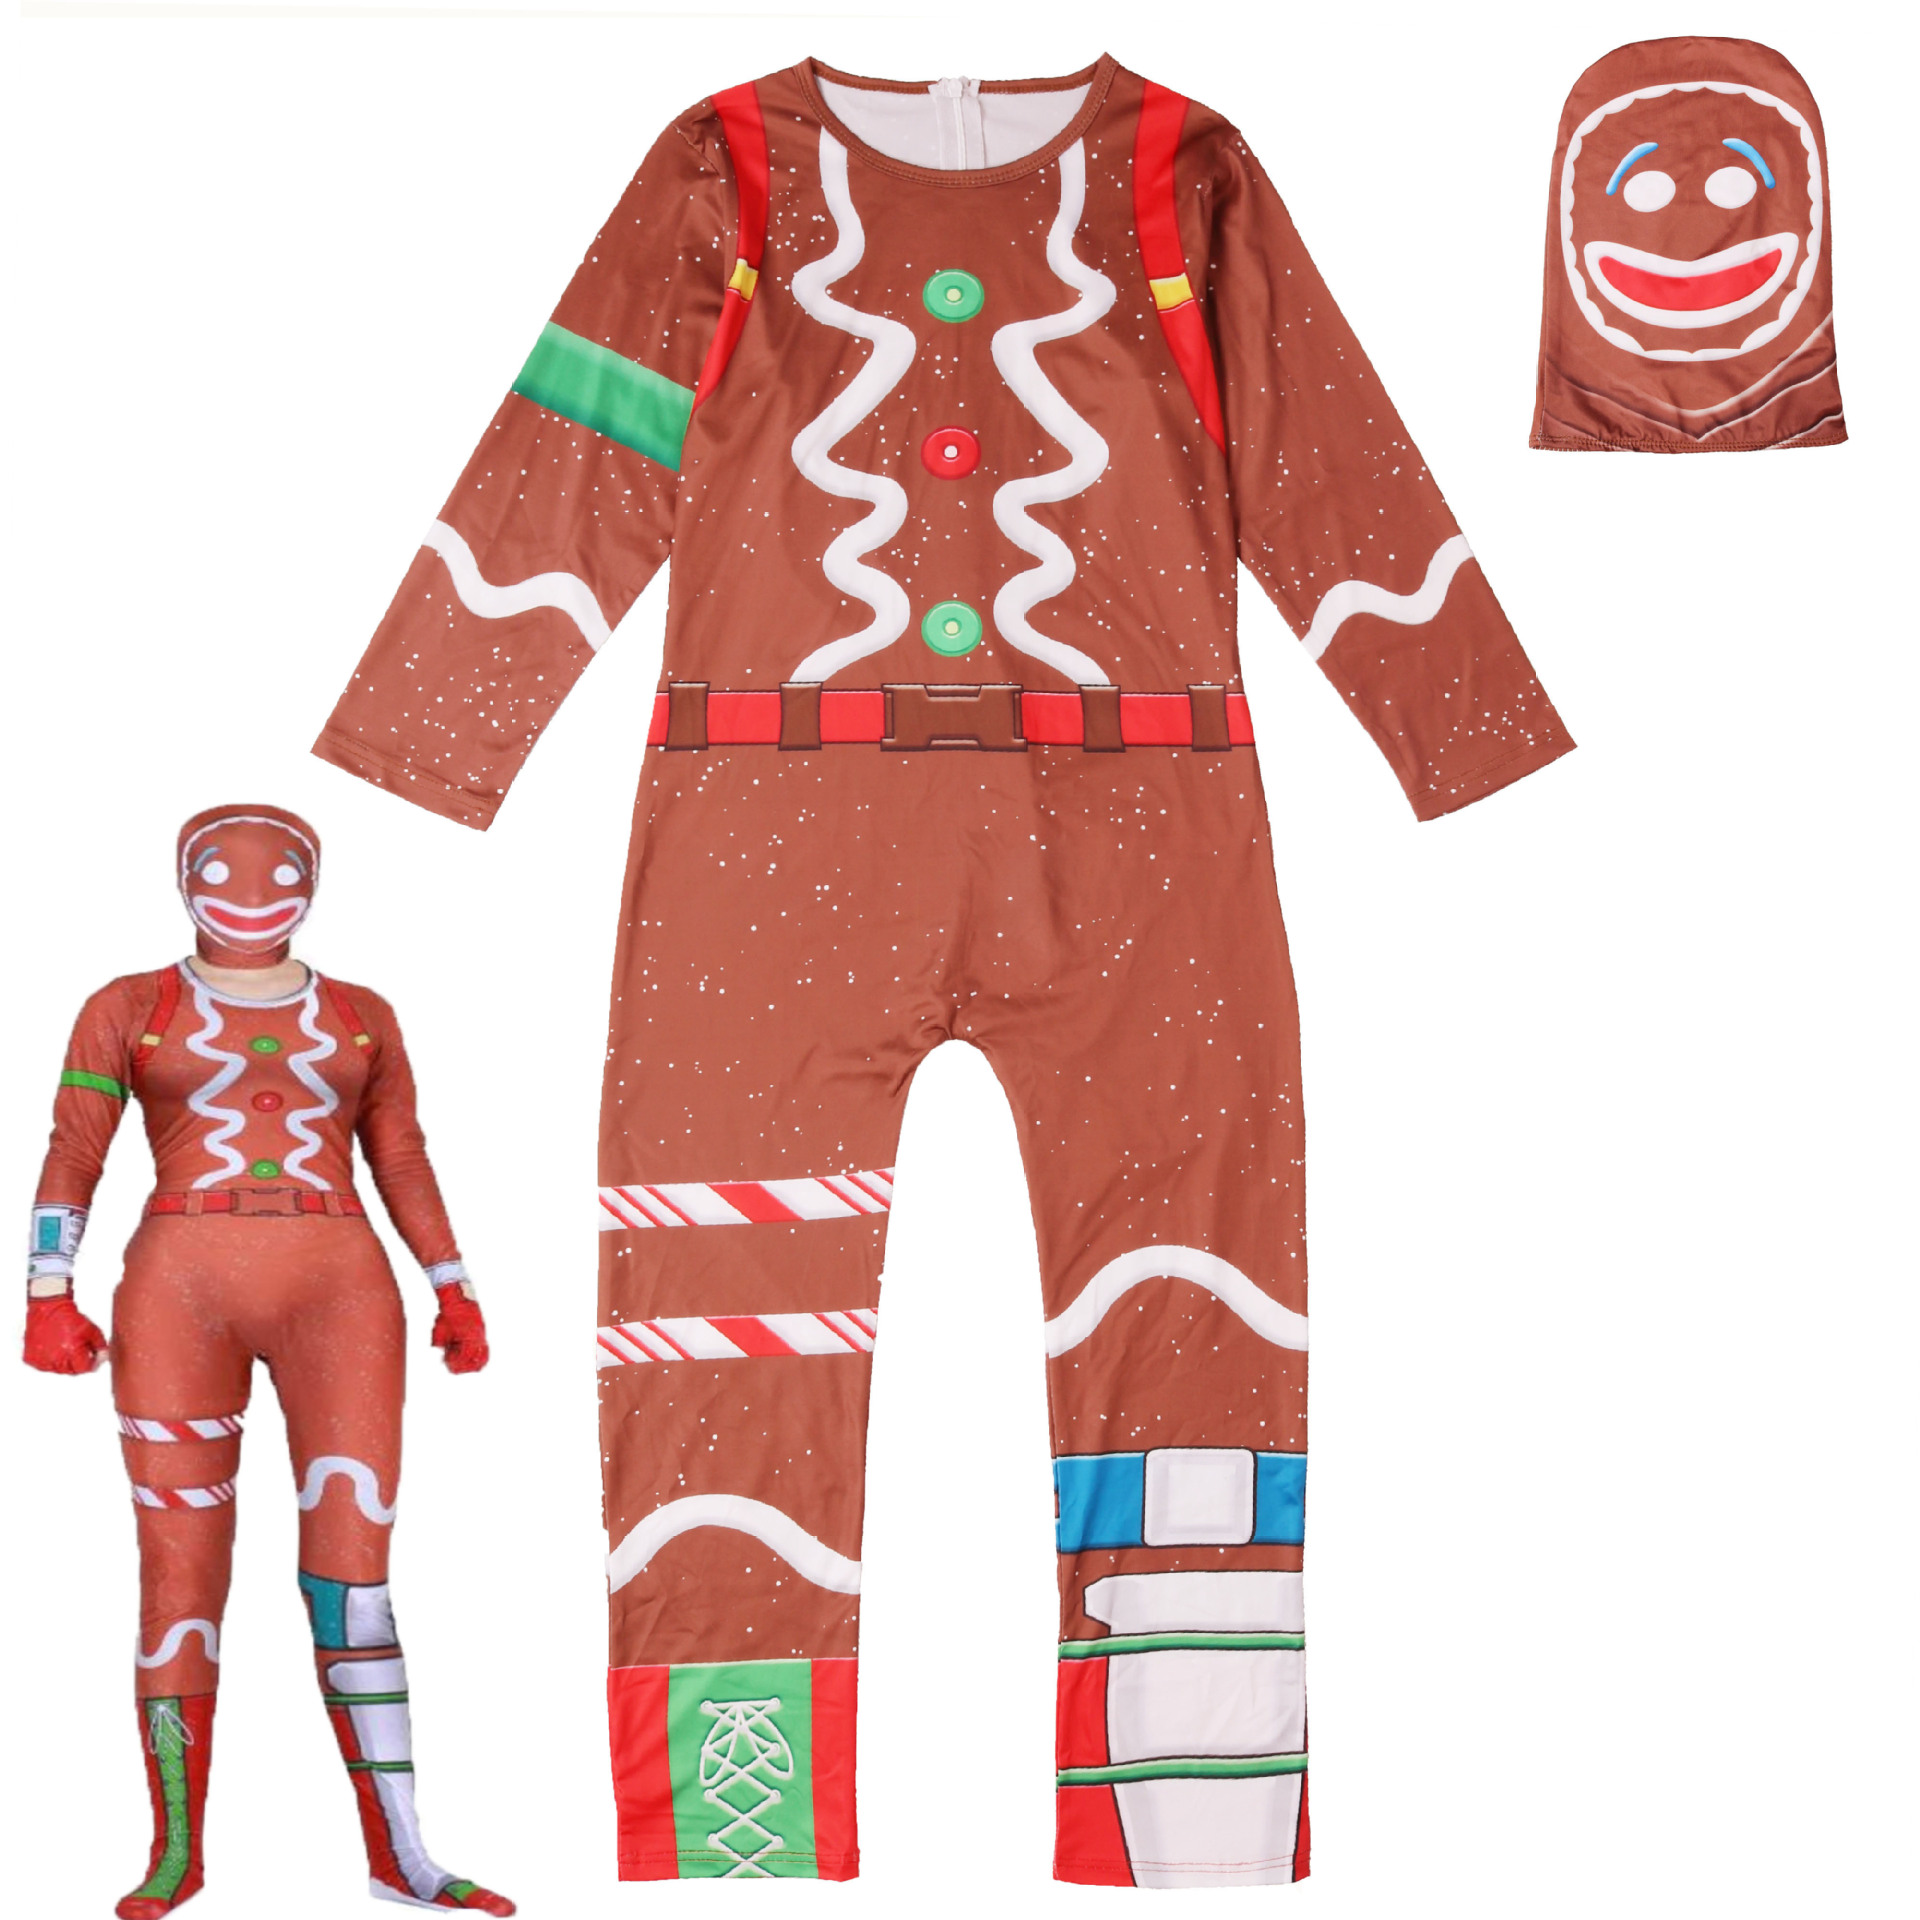 Gingerbread Man Cosplay Costume Party for Kids Boy Girl Fancy Jumpsuits Mask Halloween/Christmas Costume for Man and Woman